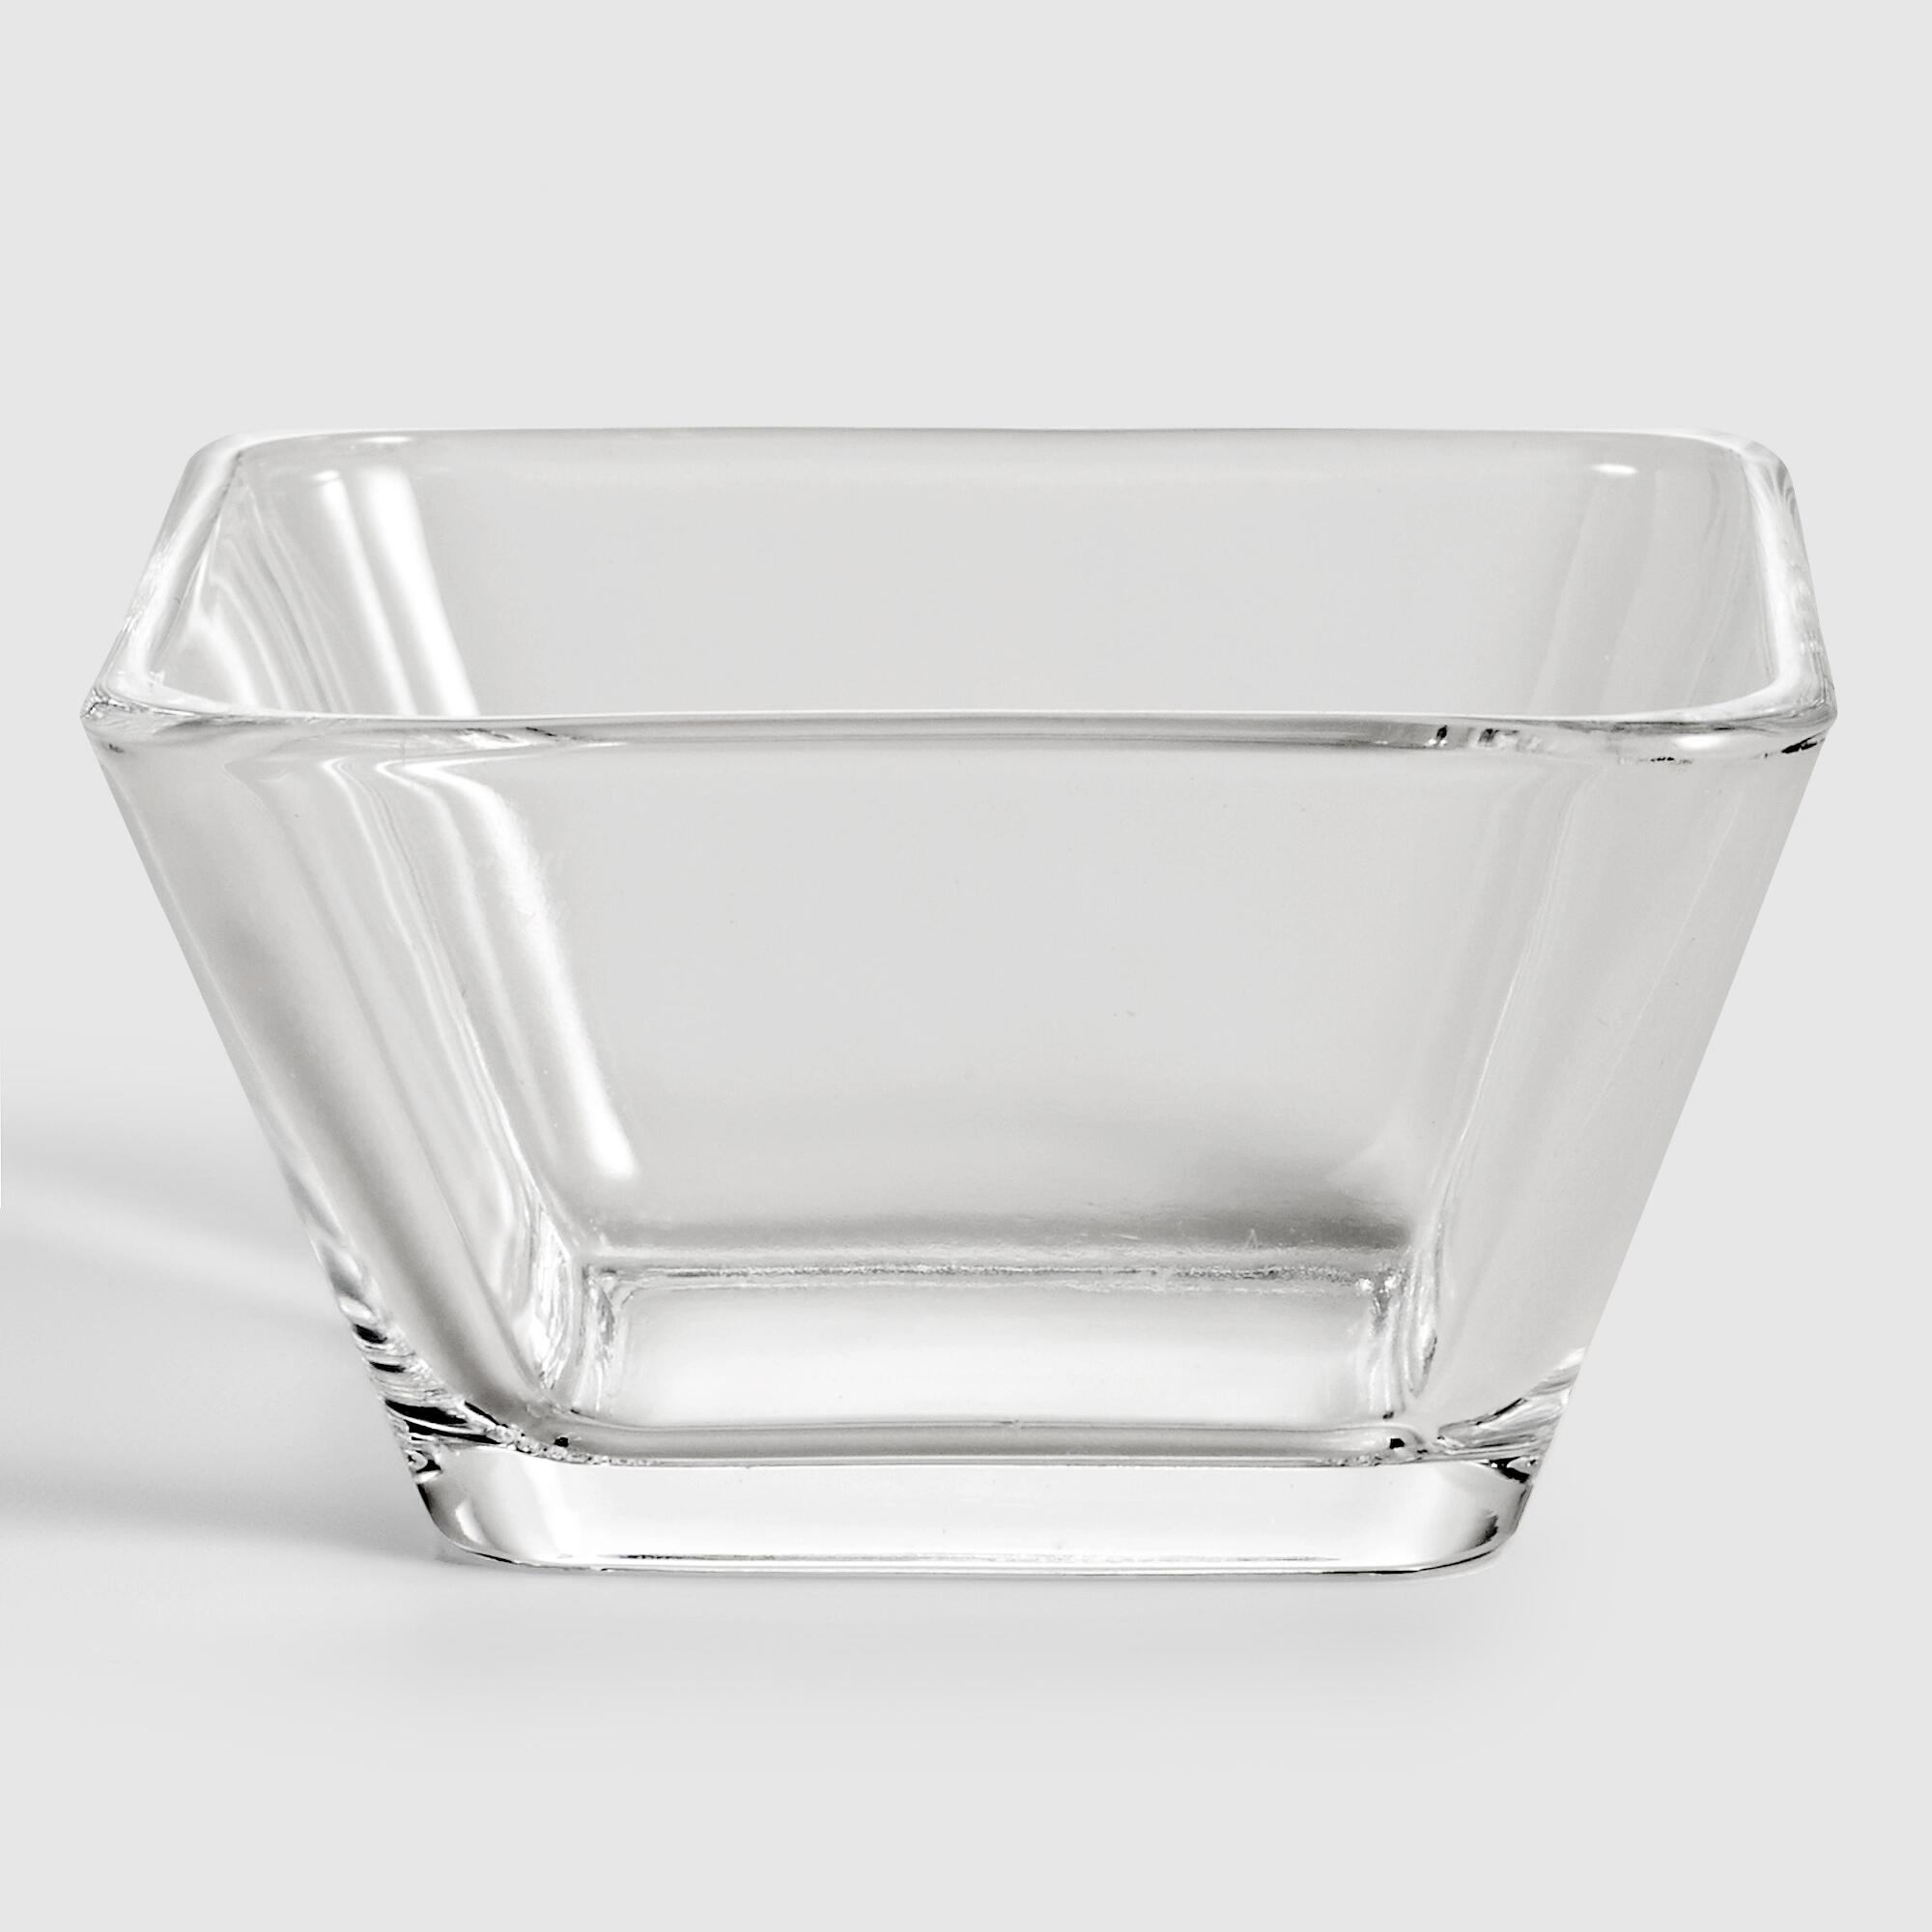 Tempo Square Glass Dipping Bowls, Set of 4 by World Market